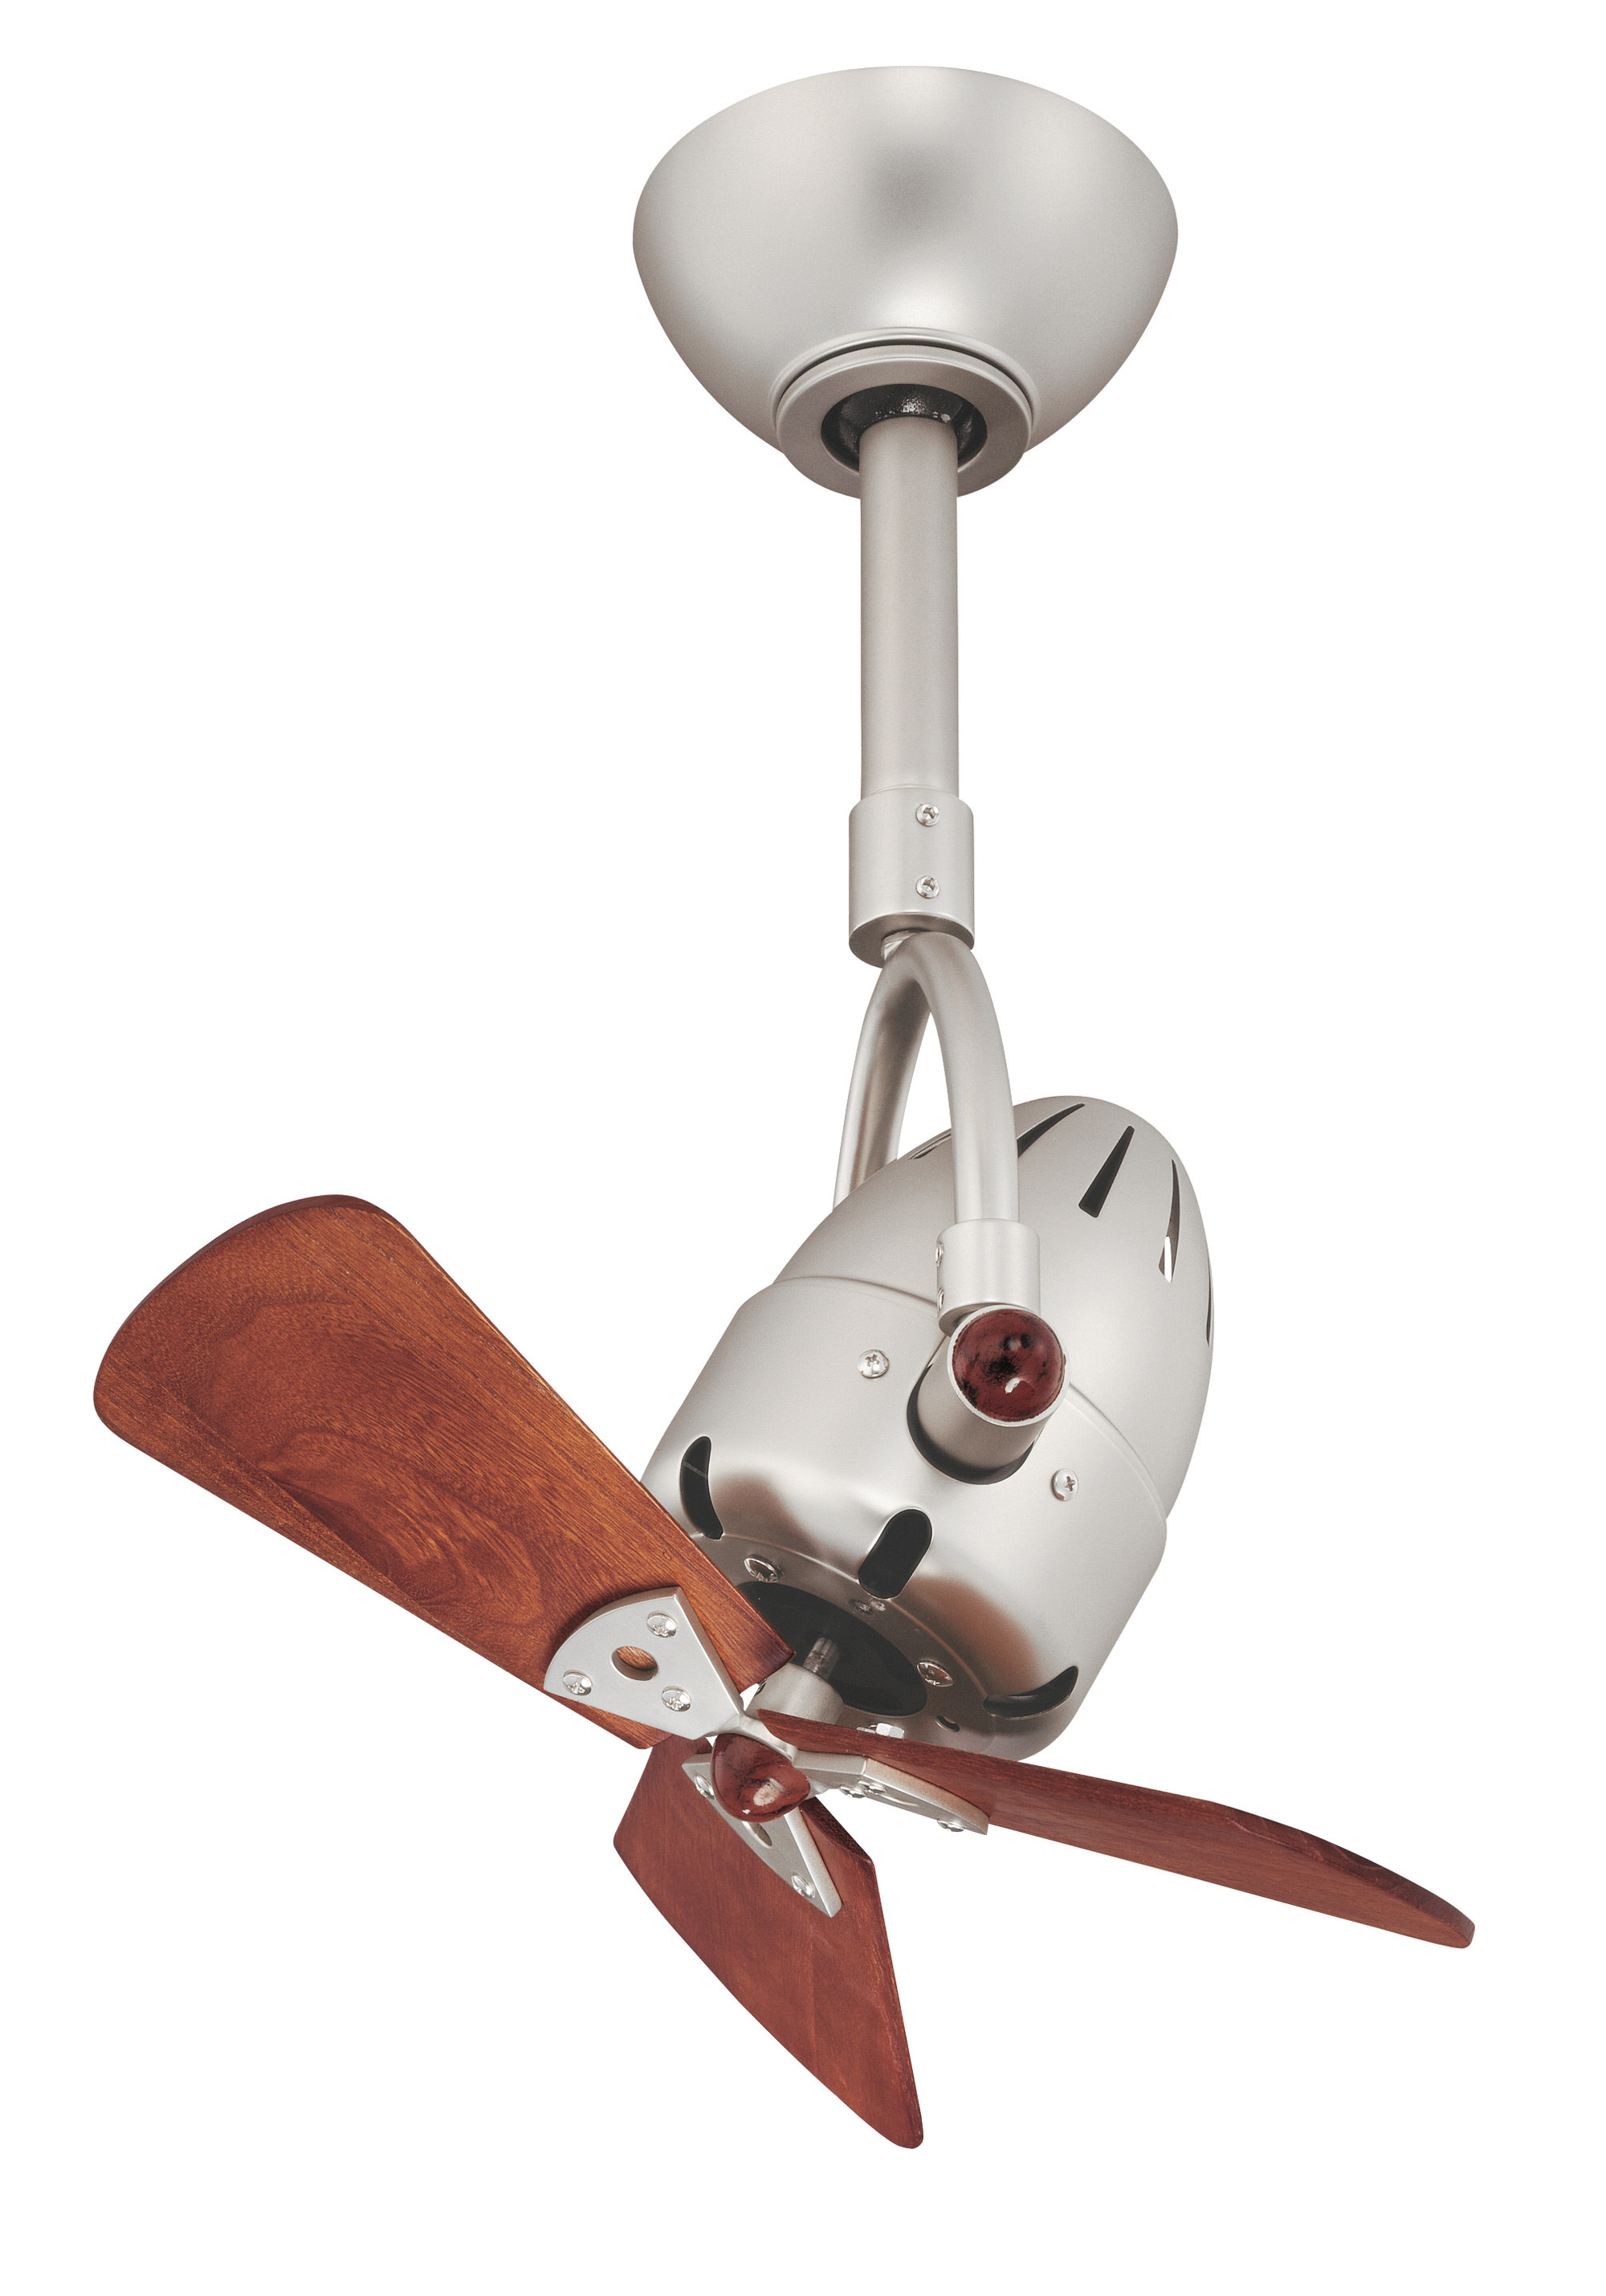 Matthews atlas diane oscillating small space ceiling fan - Pictures of ceiling fans ...